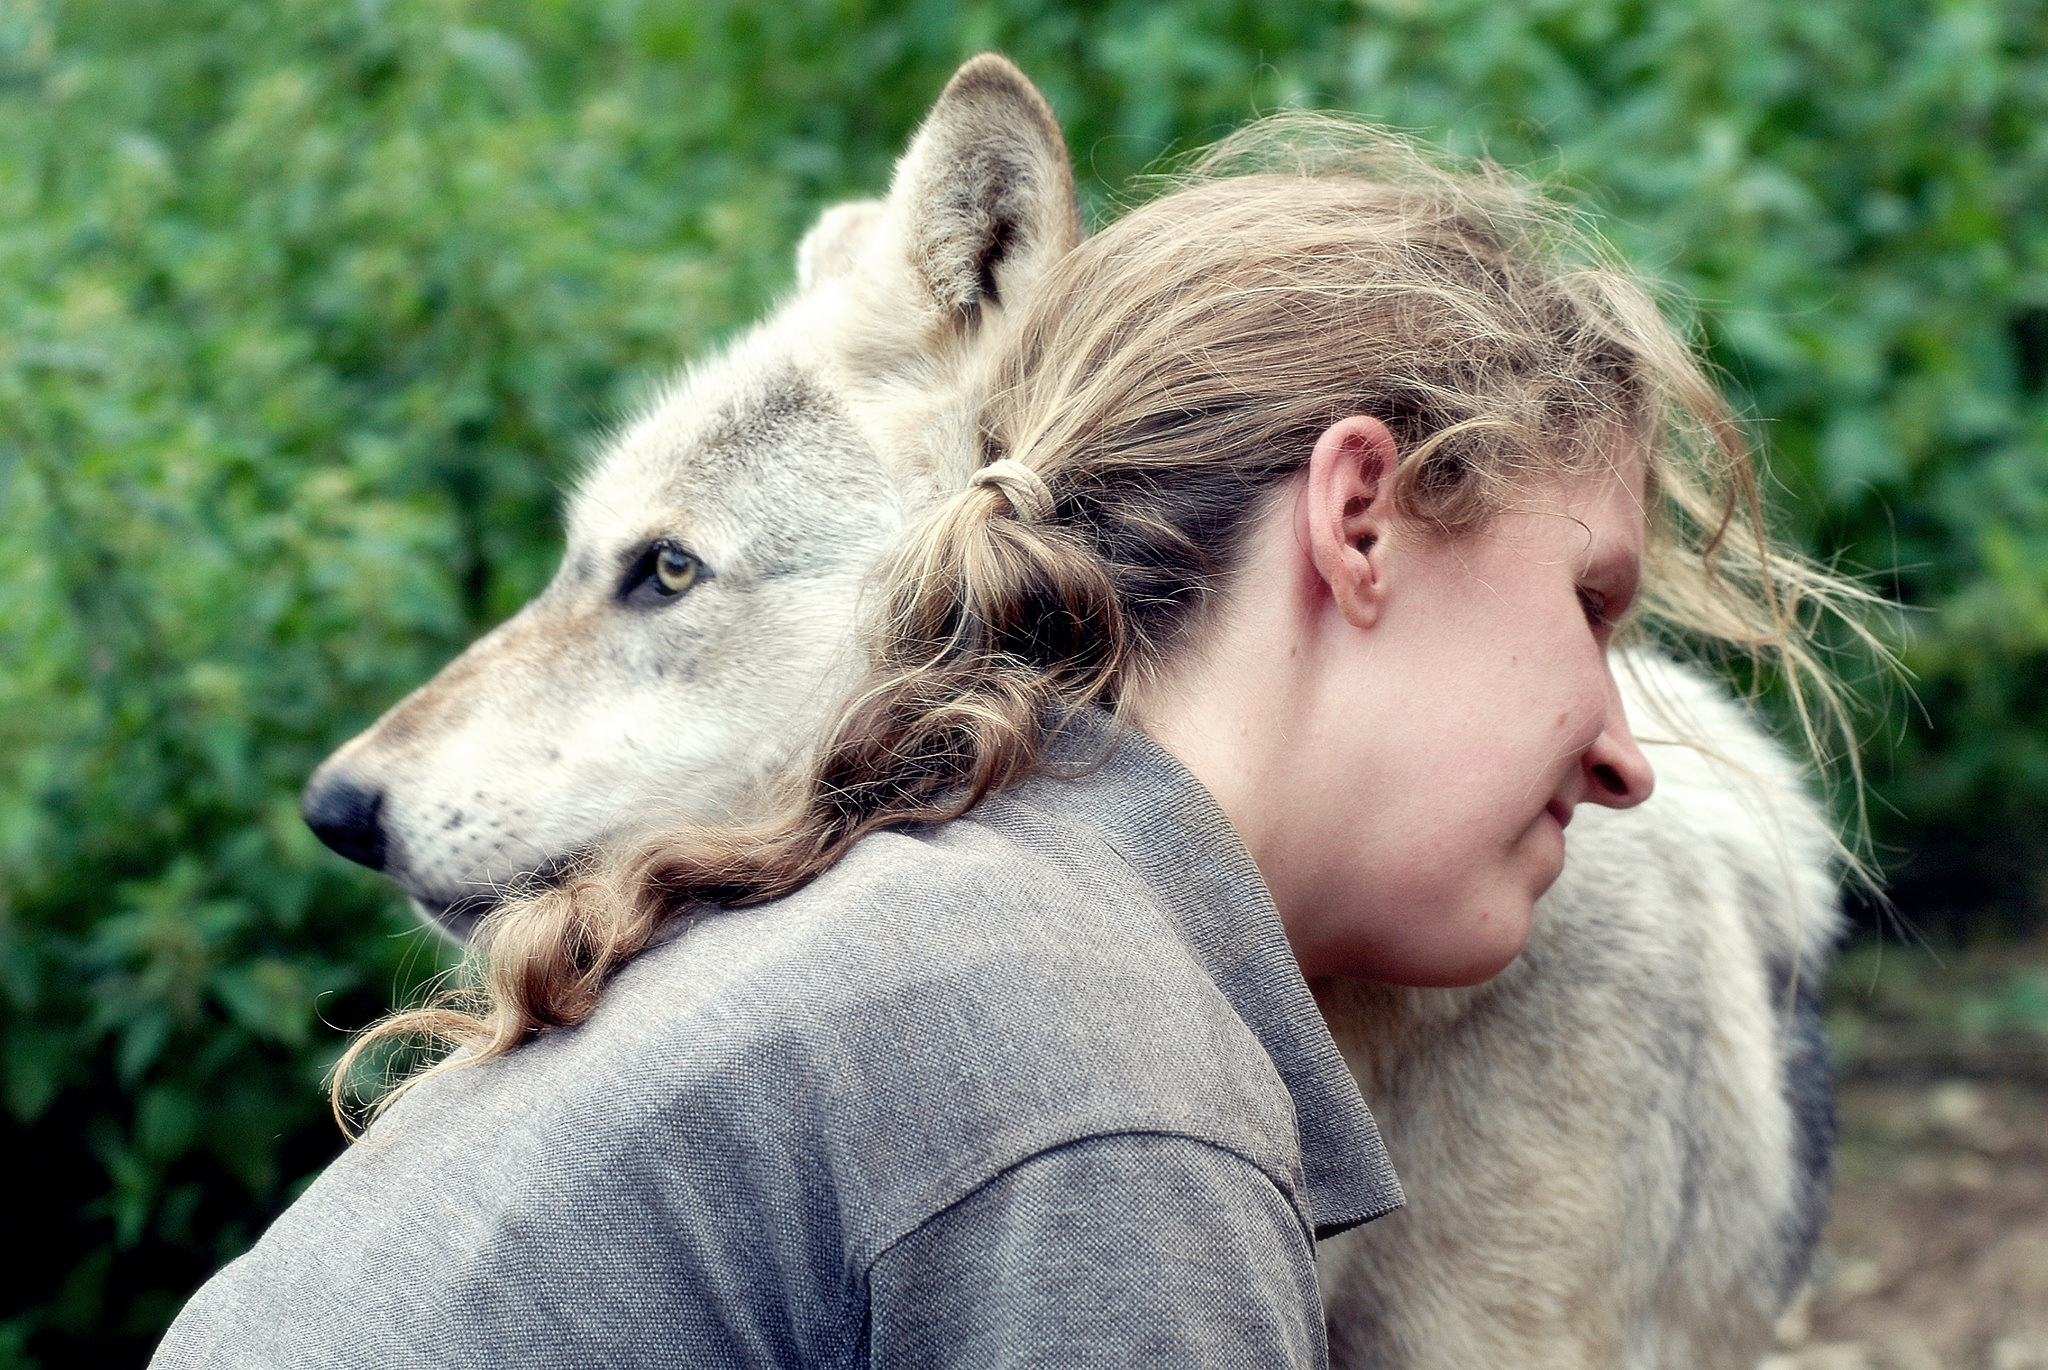 Part II – An interview with Dr Isla Fishburn, Canine Wellness Practitioner